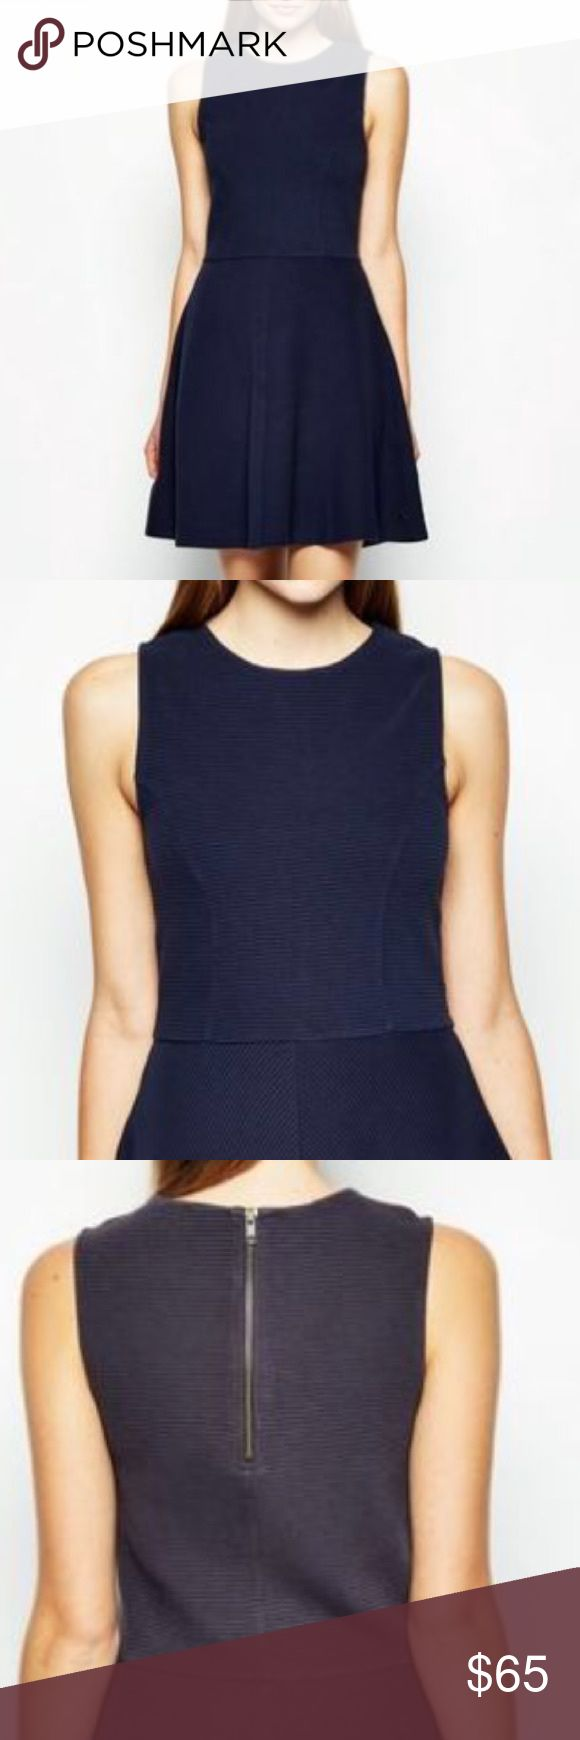 Jack Wills Dawsmere Navy Dress, US 6. New w/o tags Jack Wills Dawsmere Navy Dress, UK 10 US 6. New w/o tags.  designed to flatter. In a heavier weight soft fabric, the skirt flares out in skater style whilst the top is conservative and classy with a high neckline and tailored fit. It sits easily and comfortably with a zip fastening down the back - wear it with a structured blazer to keep things elegant. Jack Wills Dresses Mini